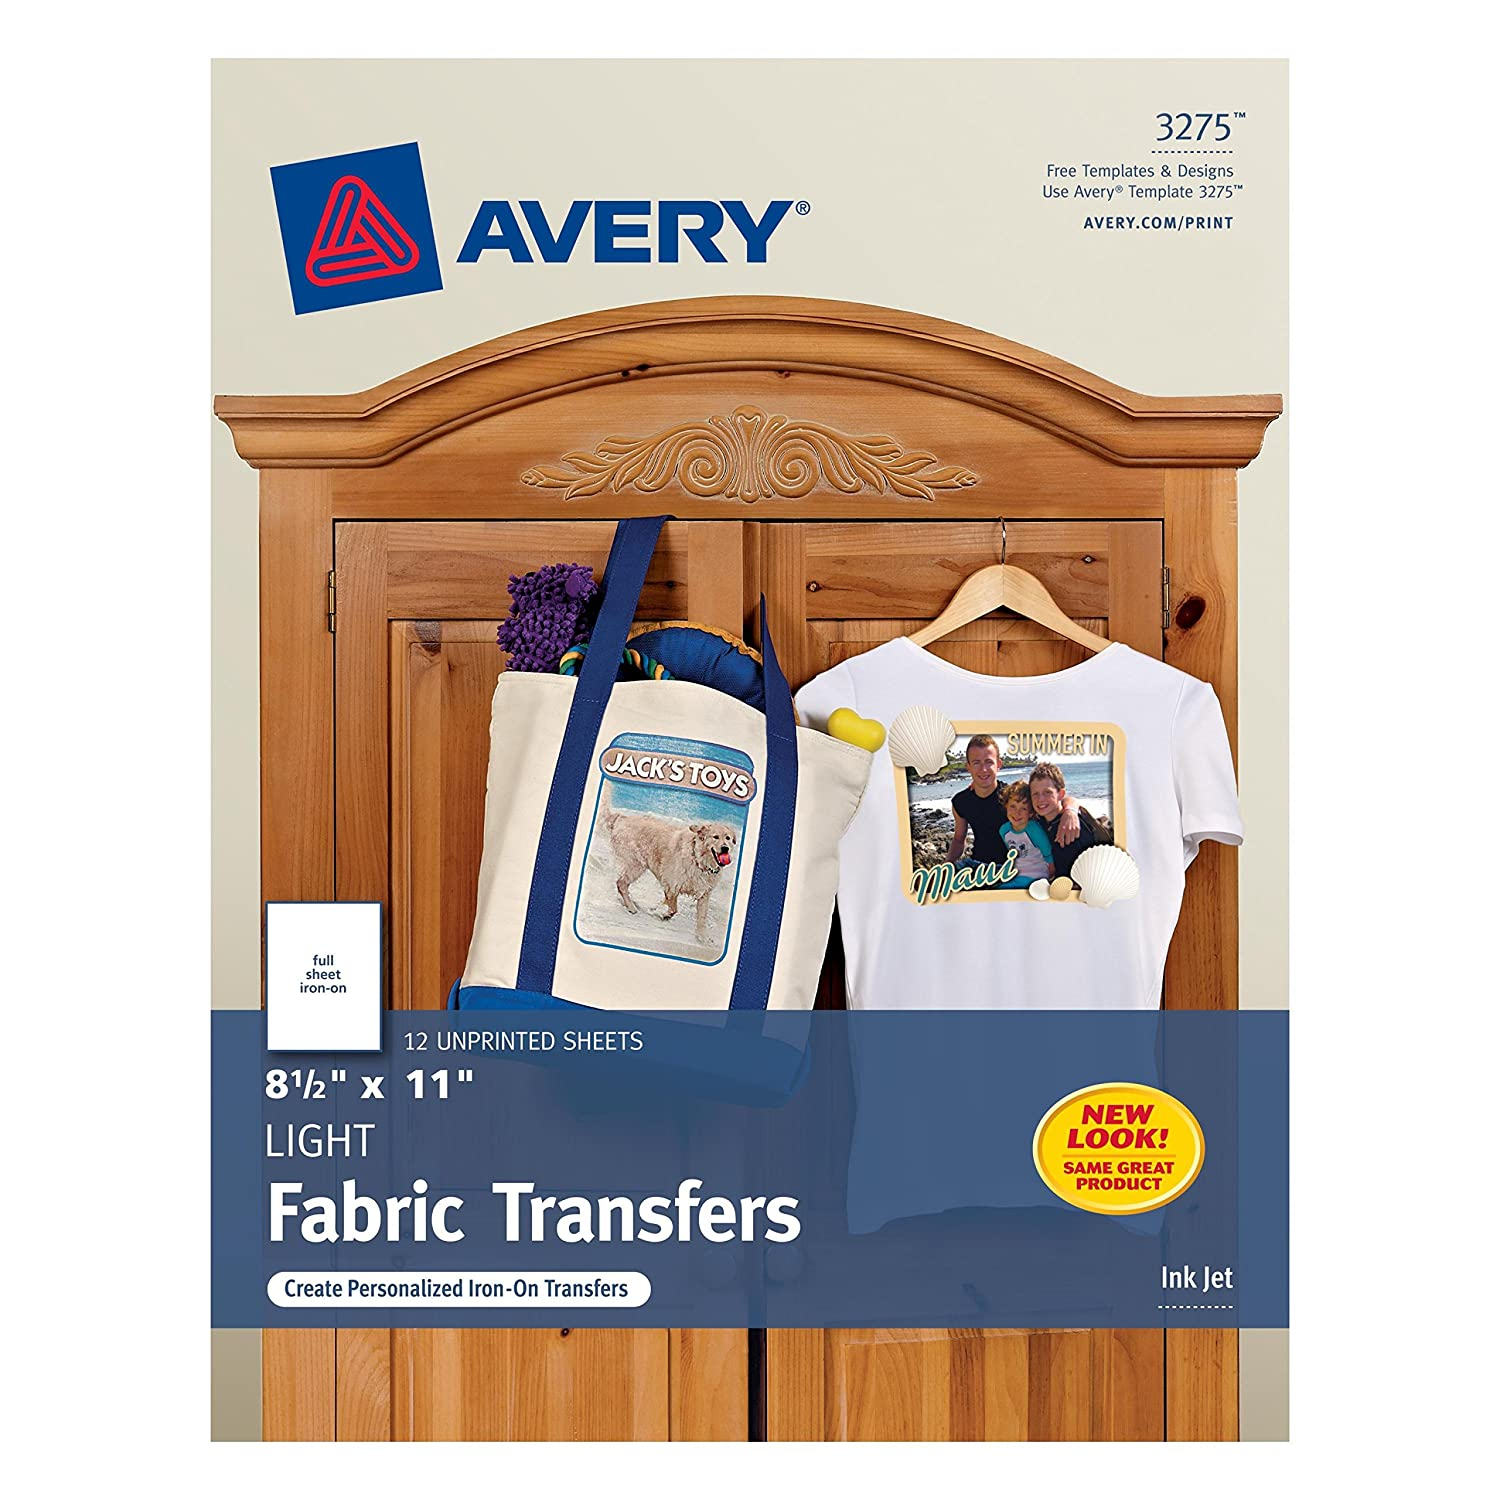 Design t shirt transfer template - Amazon Com Avery T Shirt Transfers For Inkjet Printers 8 5 X 11 Inches Pack Of 12 03275 Fabric Iron On Transfers Office Products